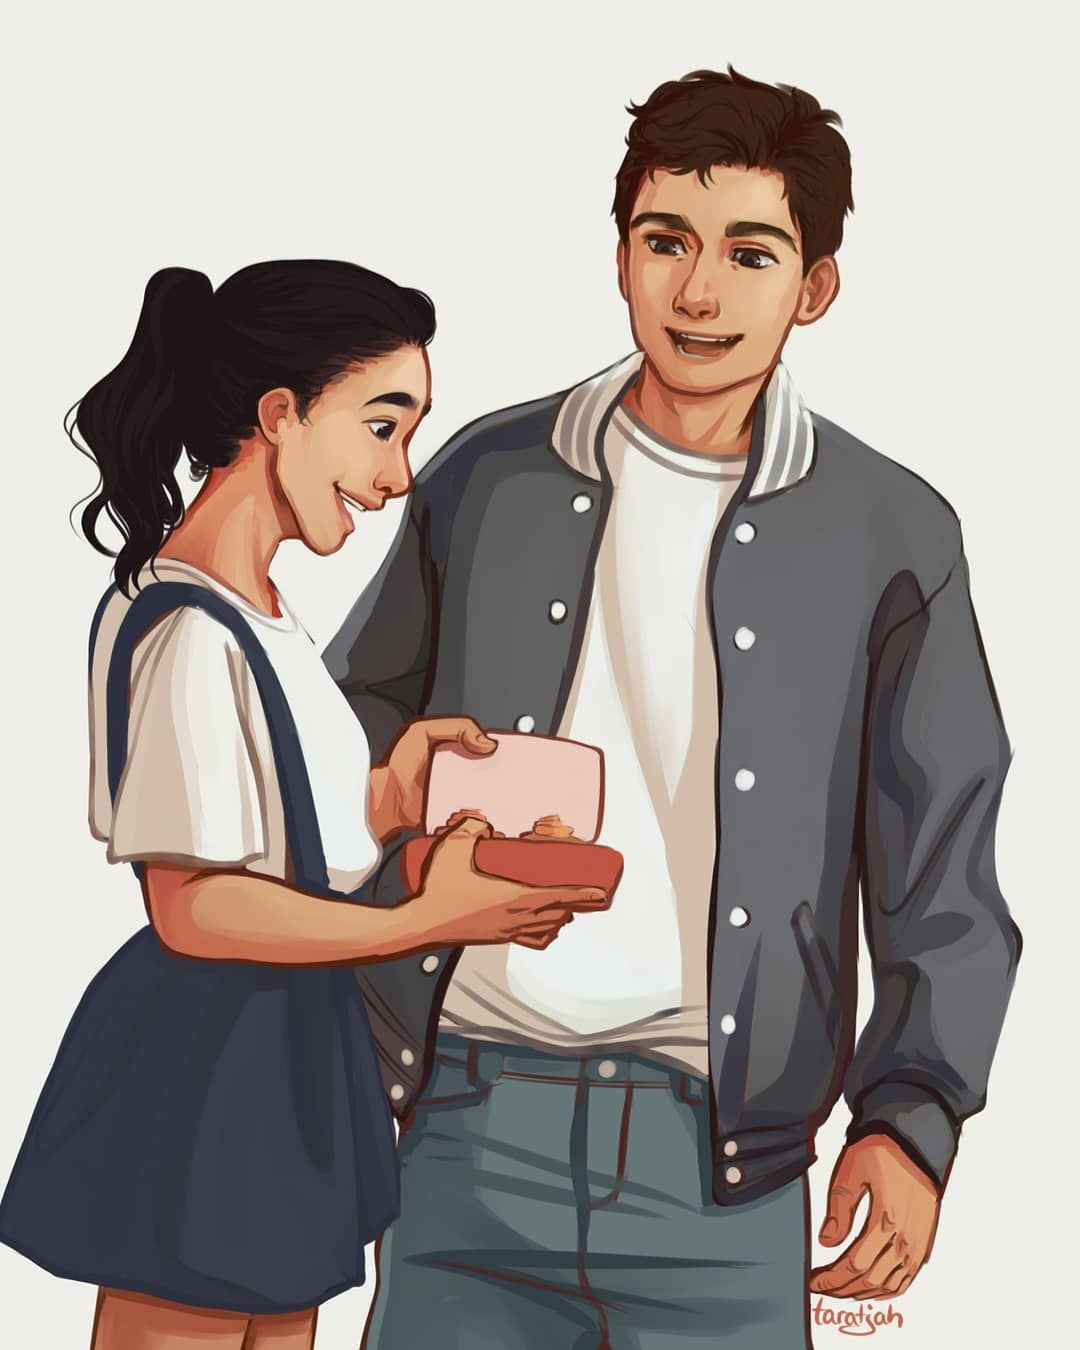 To All The Boys I Ve Loved Before Won This Month S Poll On My Patreon So Here Are Lara Jean And Peter Toalltheboysivelovedbef Lara Jean Boys Peter K